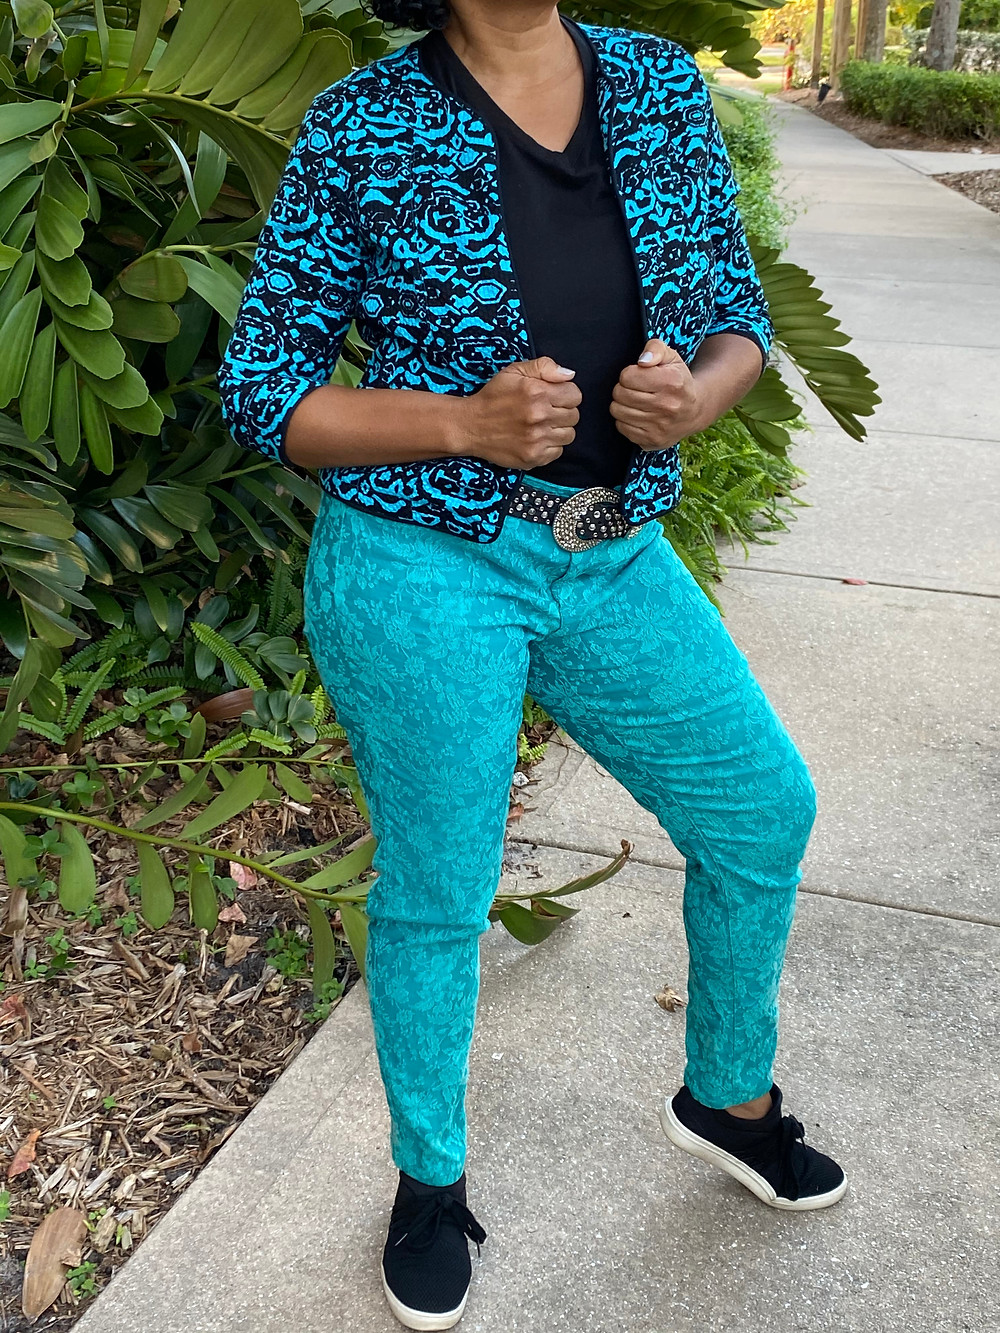 Woman wearing a turquoise pair of pants